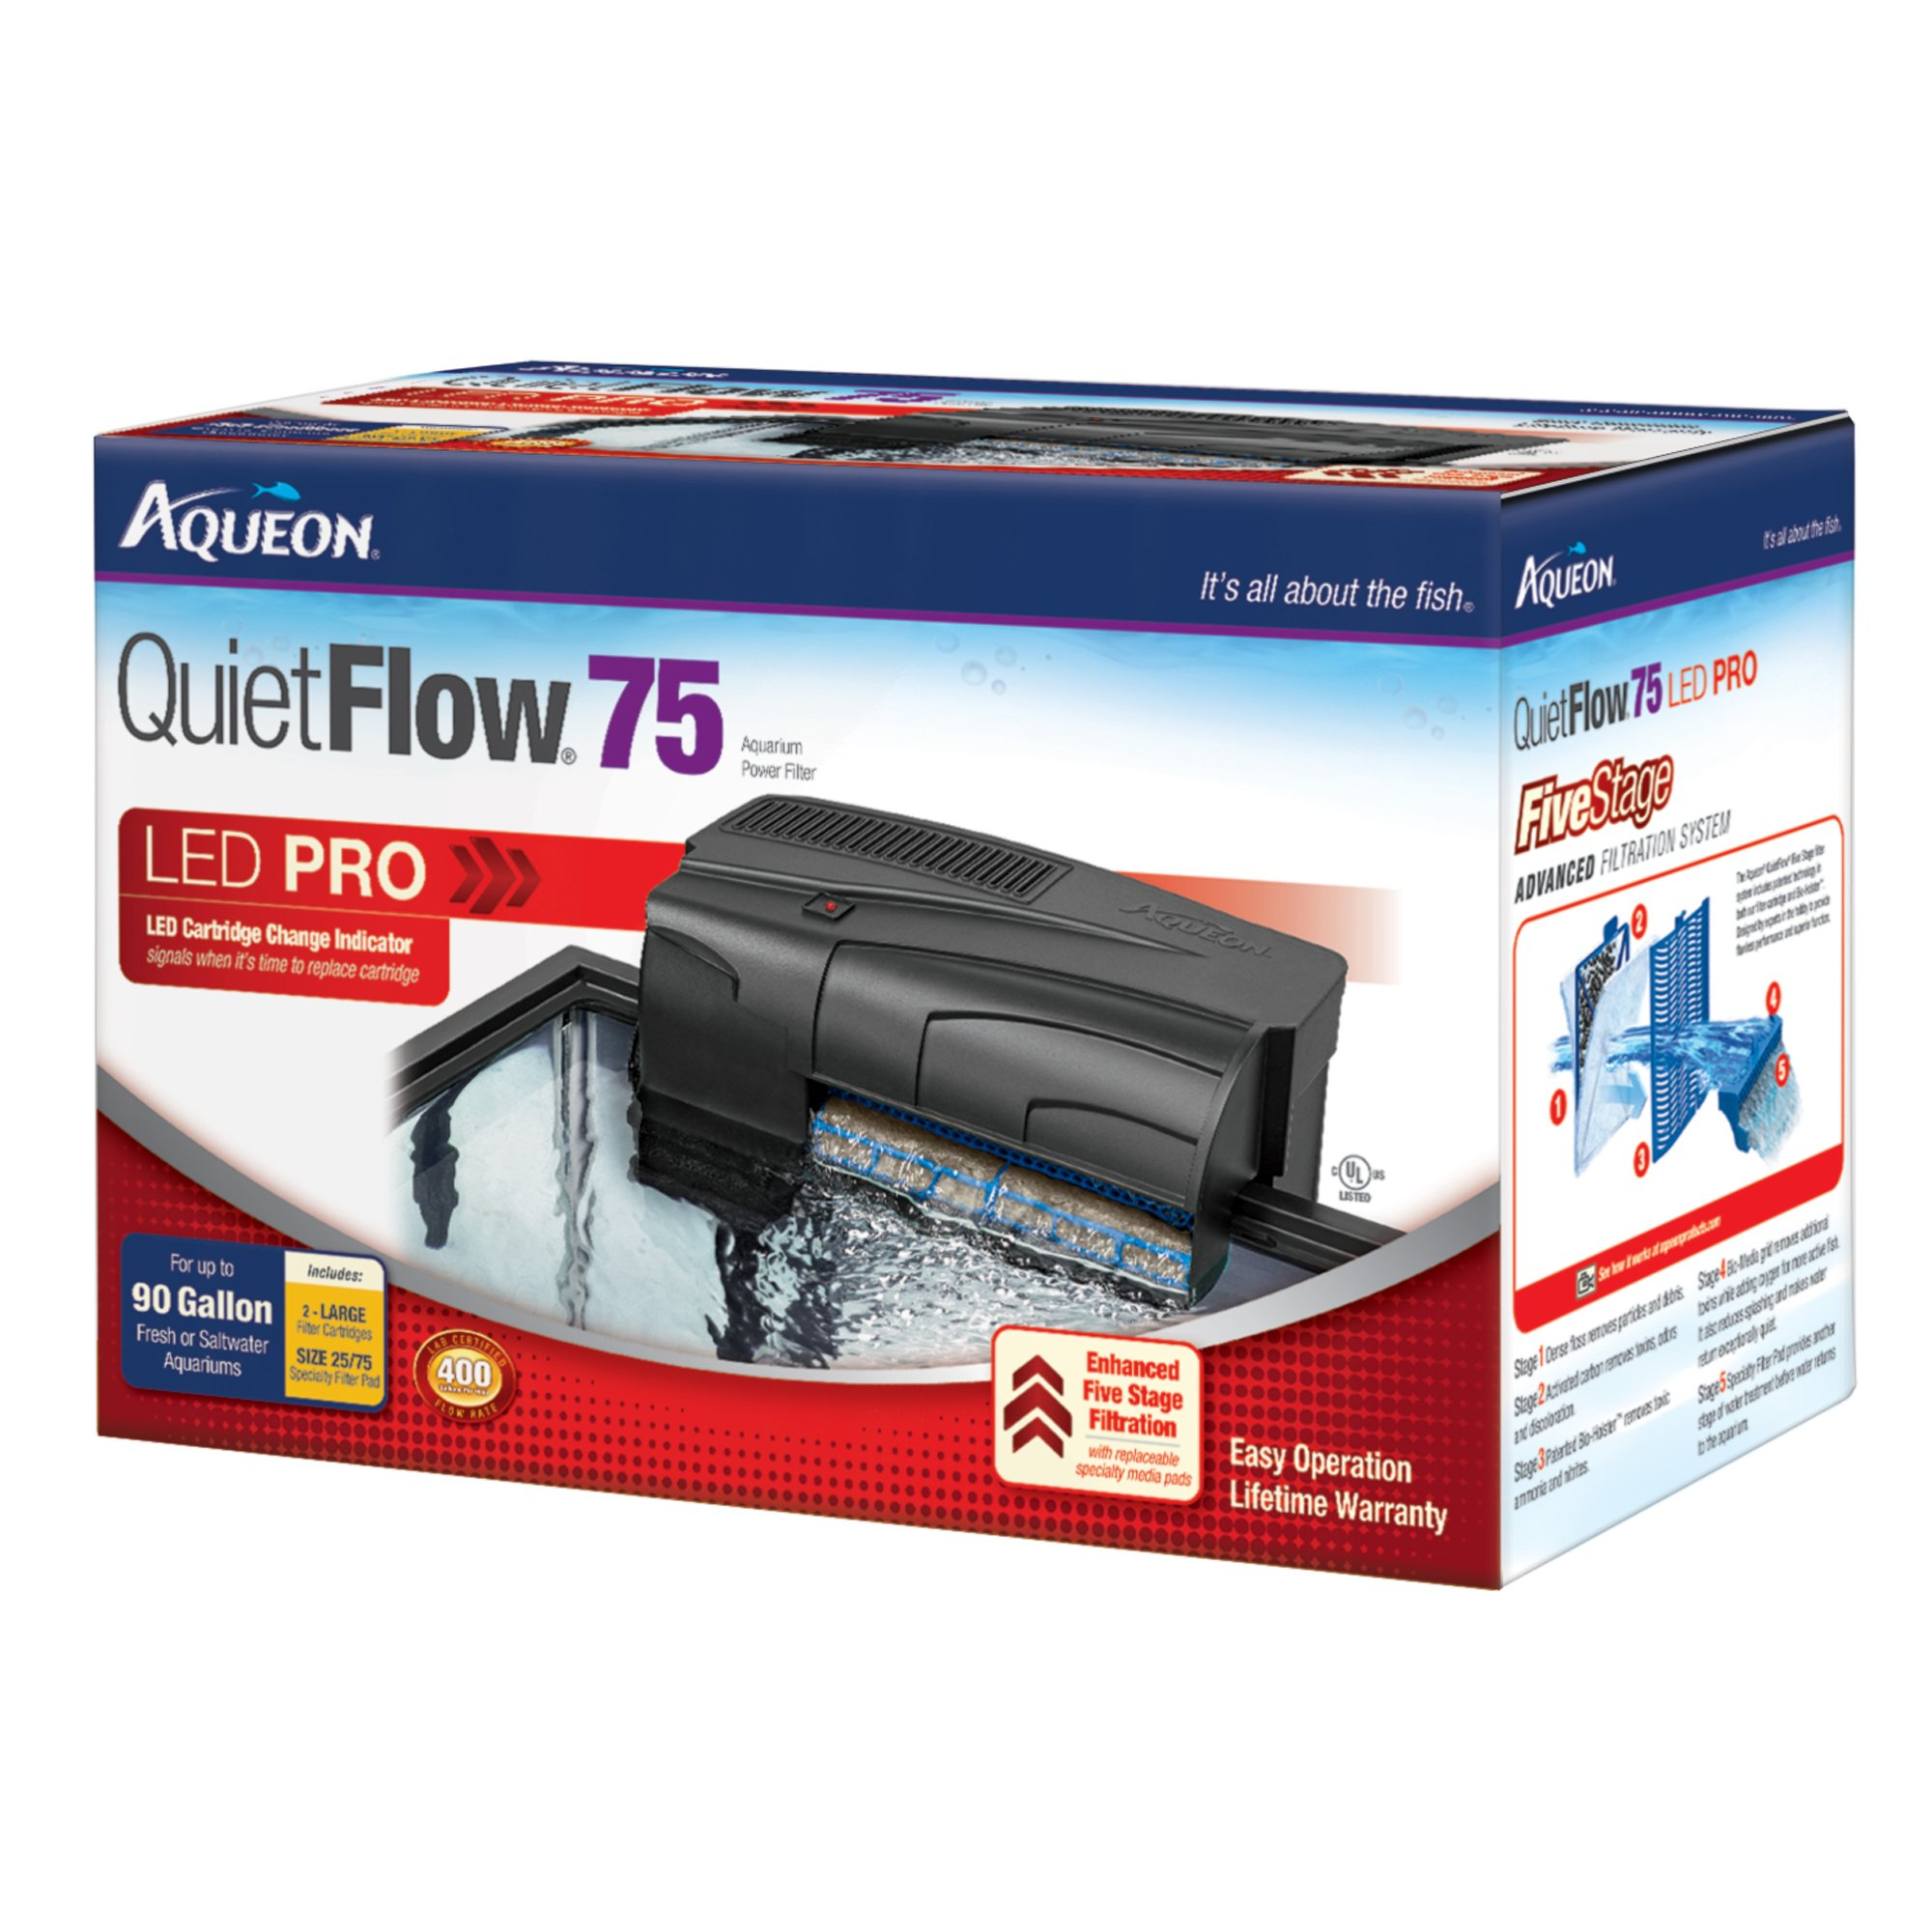 Aqueon quietflow 55 75 aquarium power filter petco for Aqueon fish tank